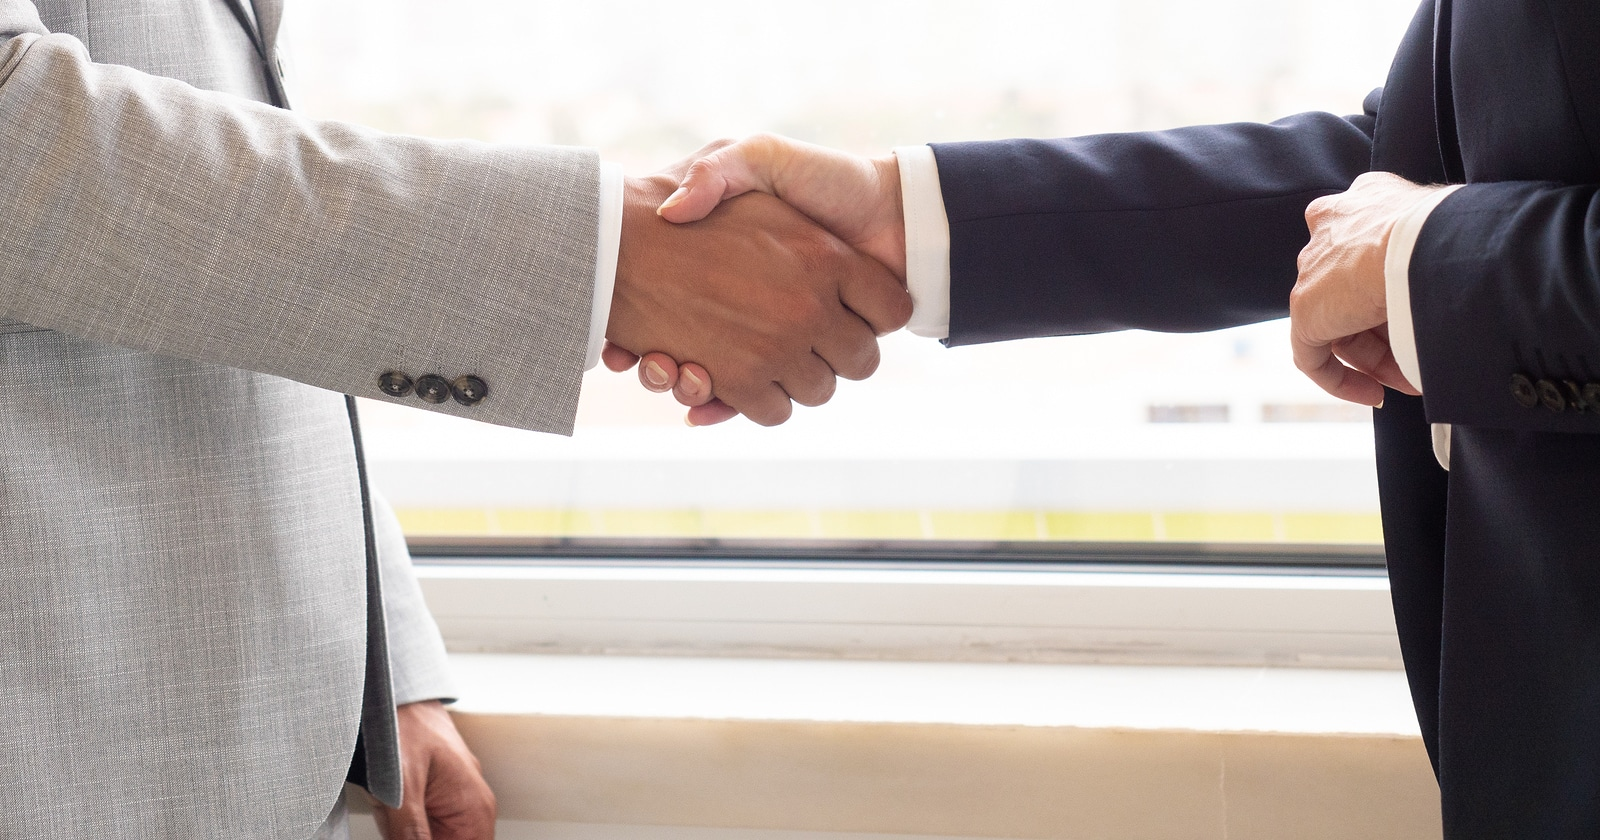 Business people shaking hands. Close-up partial view of professional businessman and businesswoman shaking hands in office. Business agreement concept